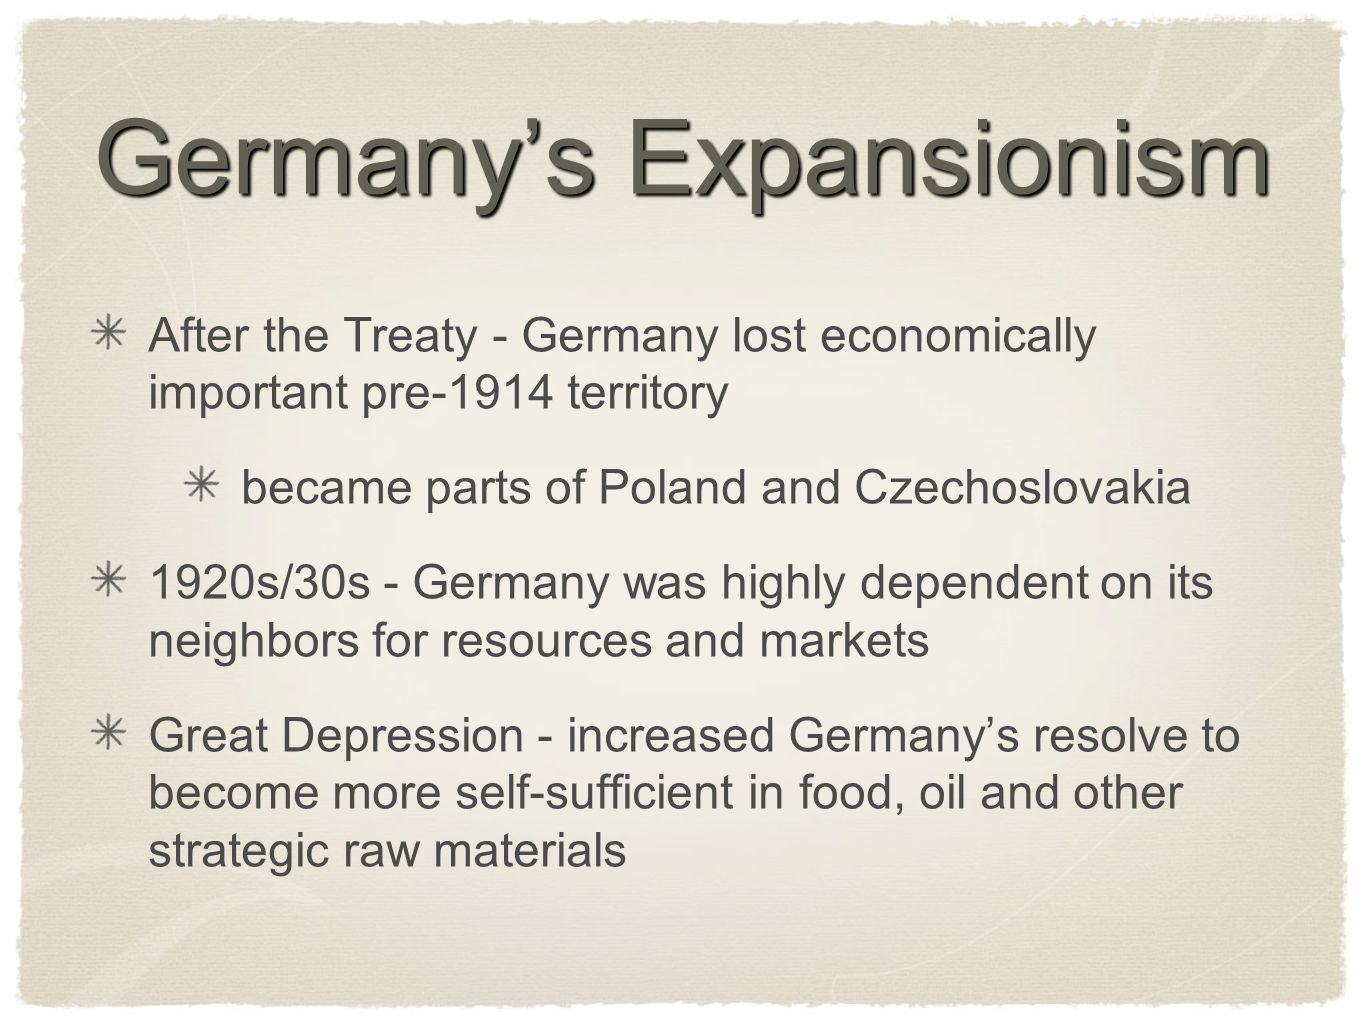 Germany's Expansionism After the Treaty - Germany lost economically important pre-1914 territory became parts of Poland and Czechoslovakia 1920s/30s -